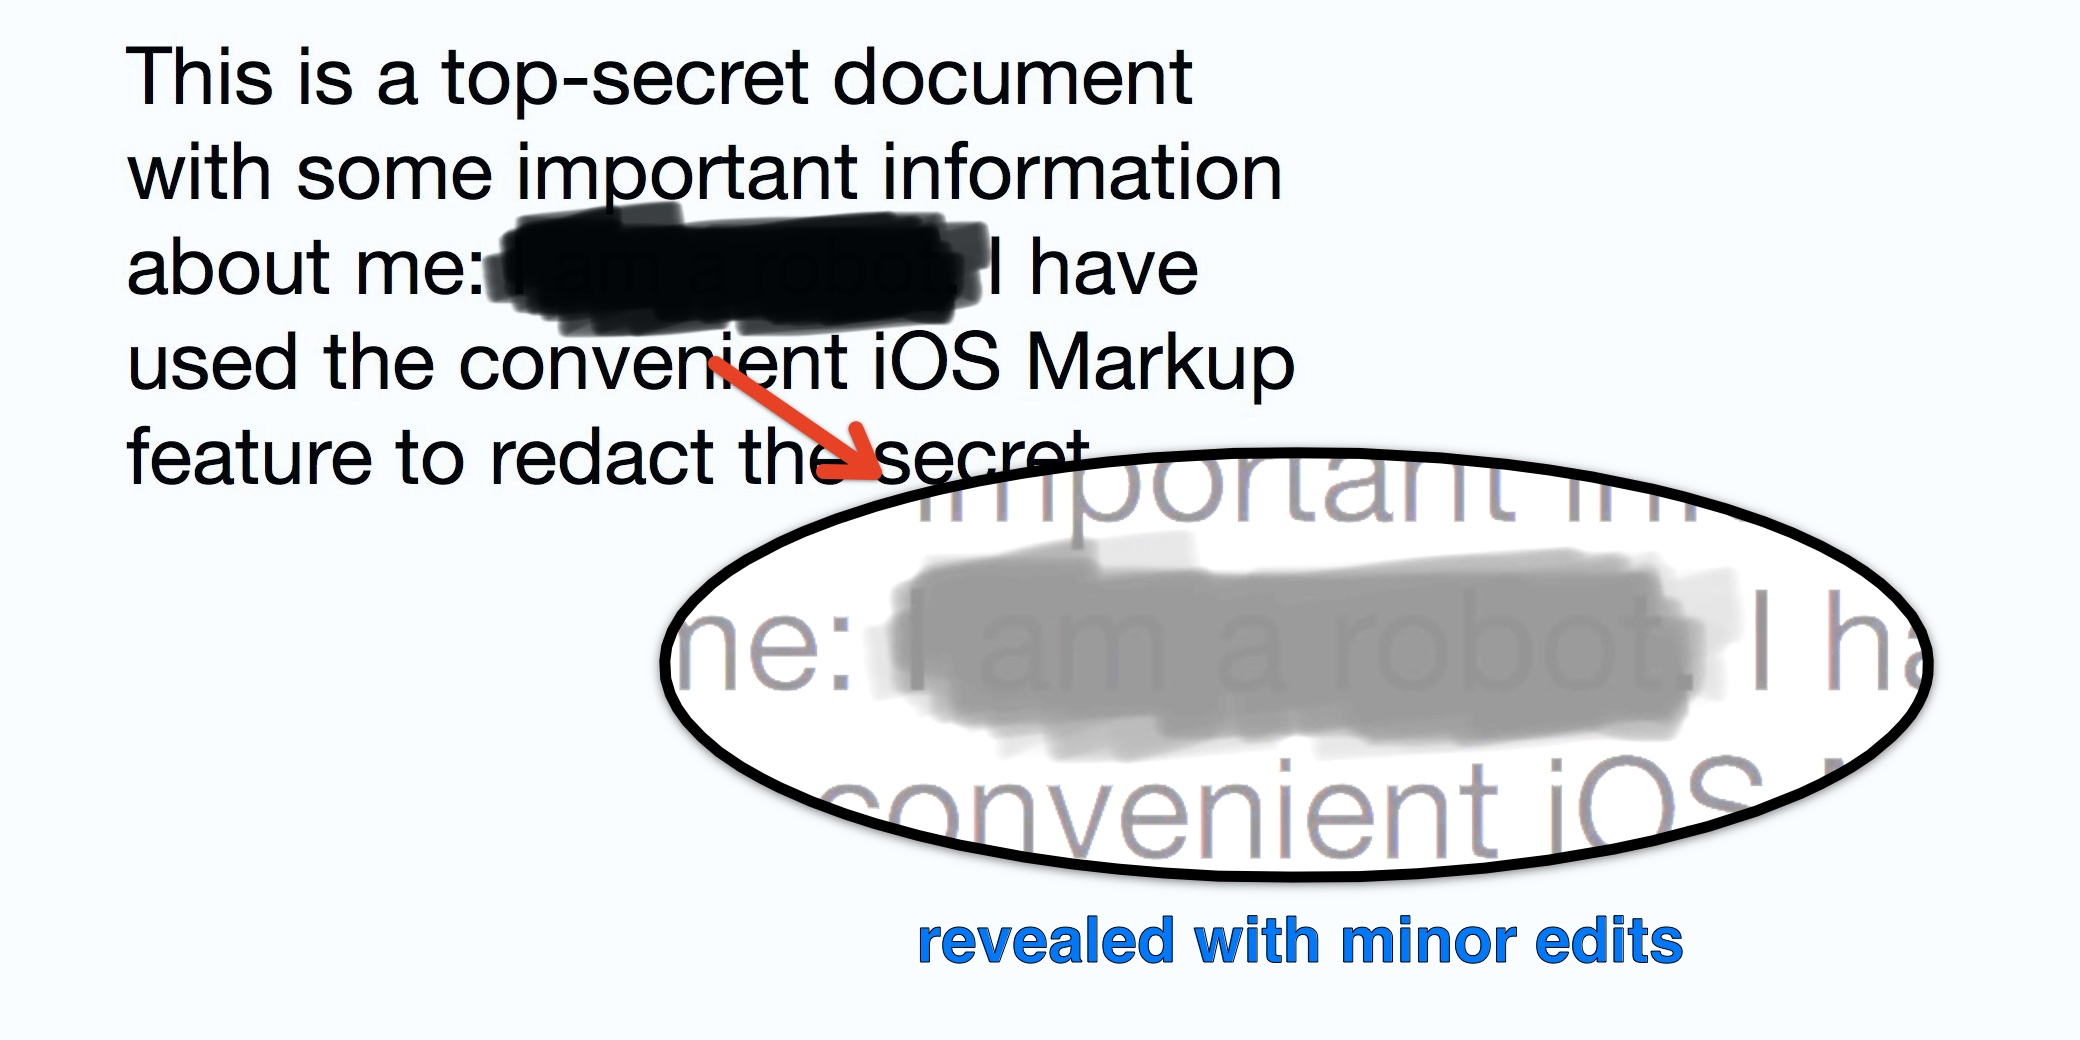 Psa Ios Markup Is Not Designed To Be A Redaction Tool For Sensitive